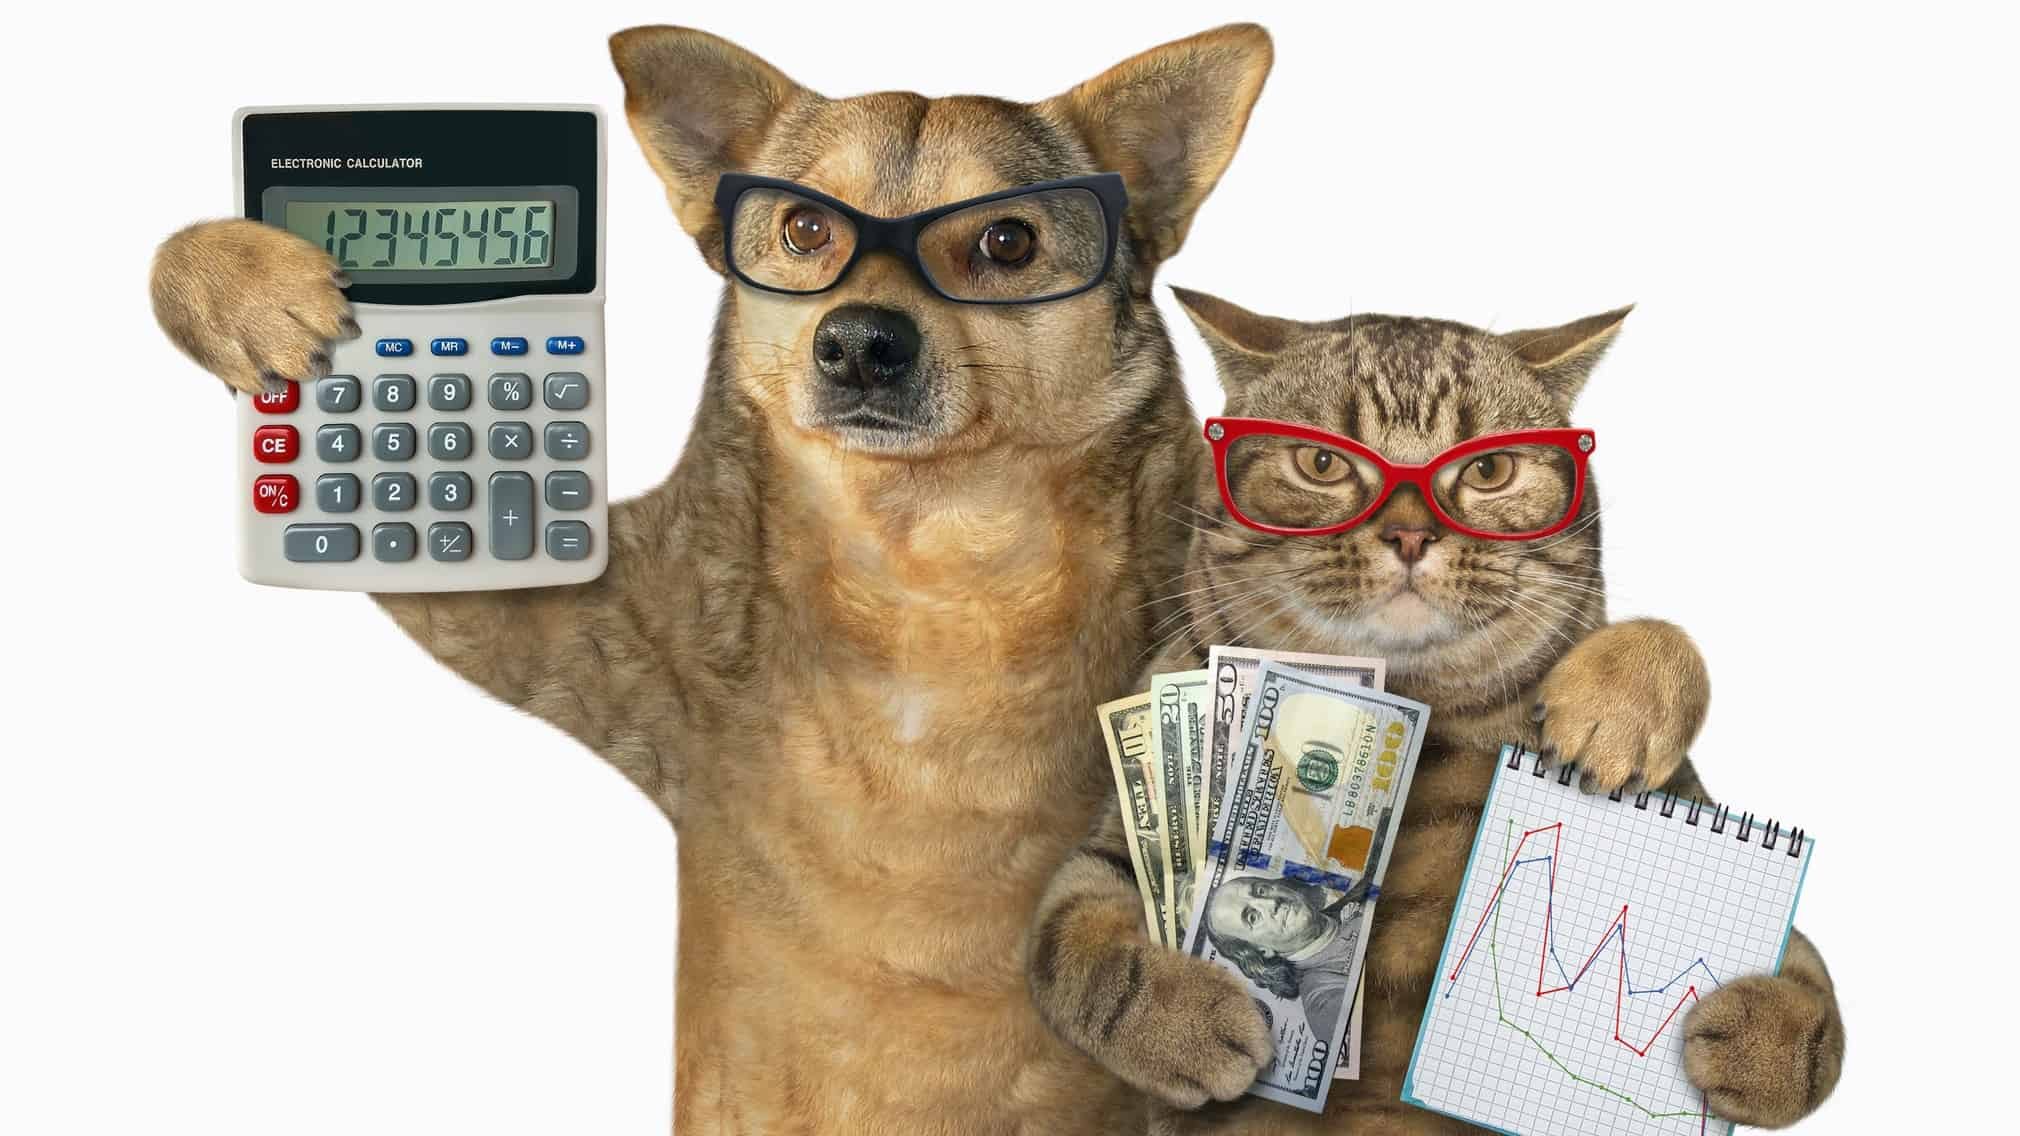 investors in asx shares represented by cat and dog wearing glasses and holing charts and cash